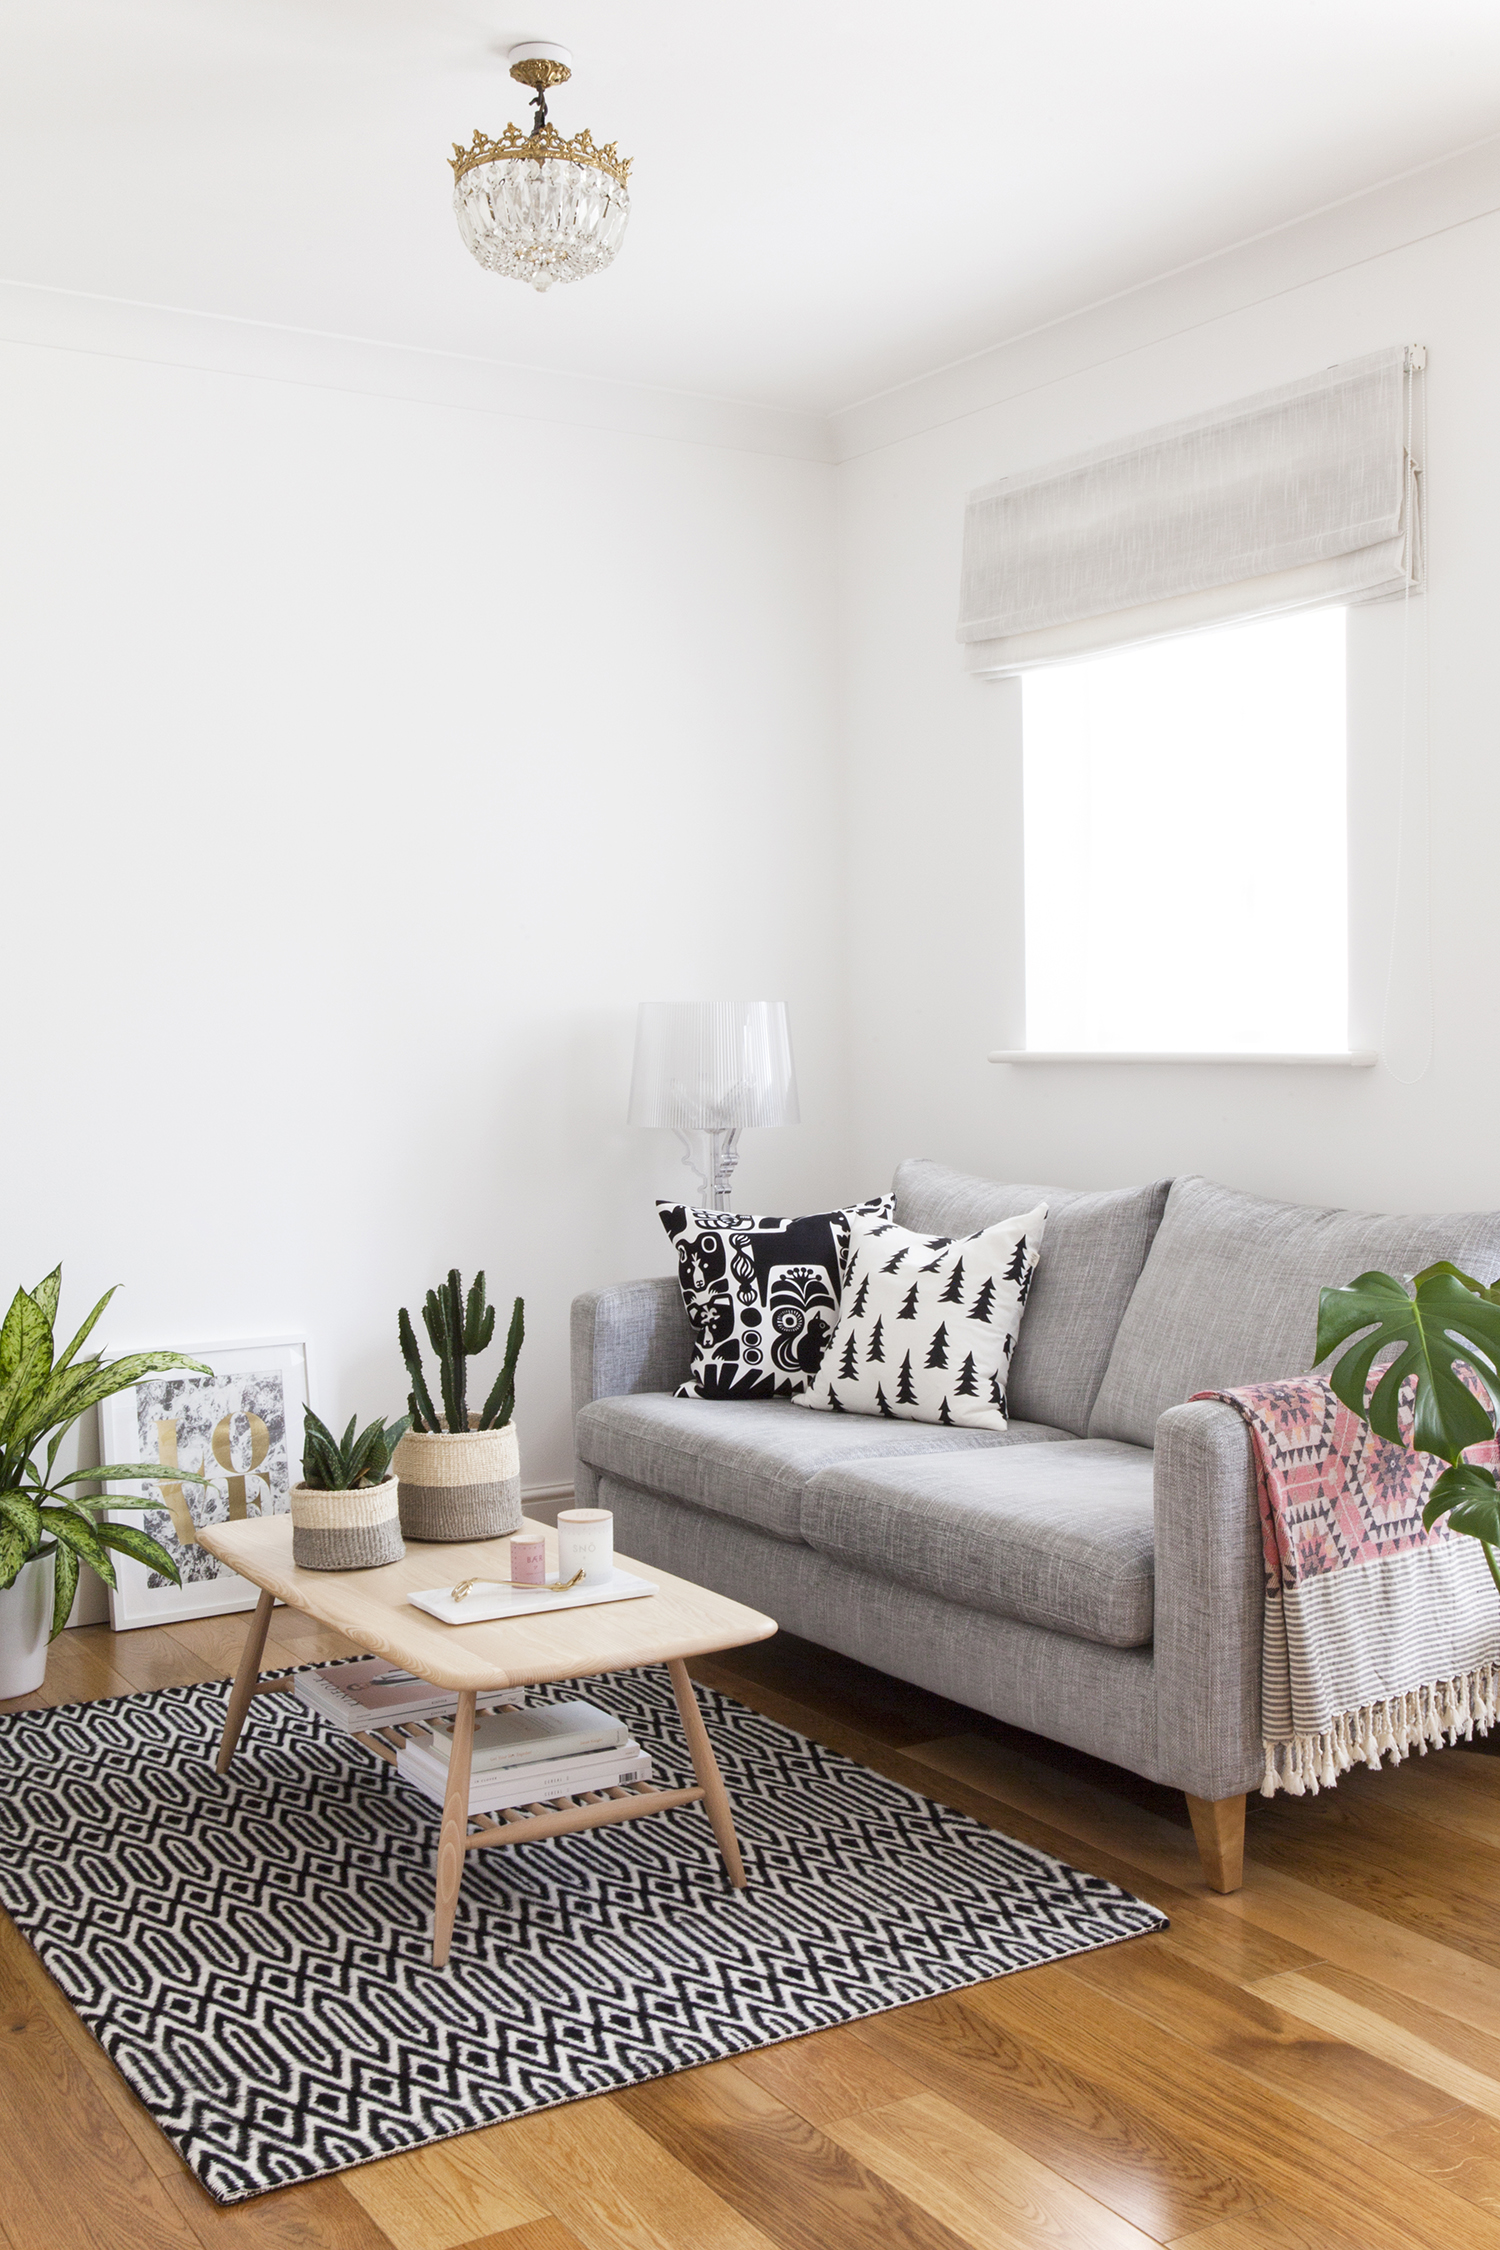 Ten Ways I Simplified My Life | photo of a calm and tidy living room | natashadenness.co.uk